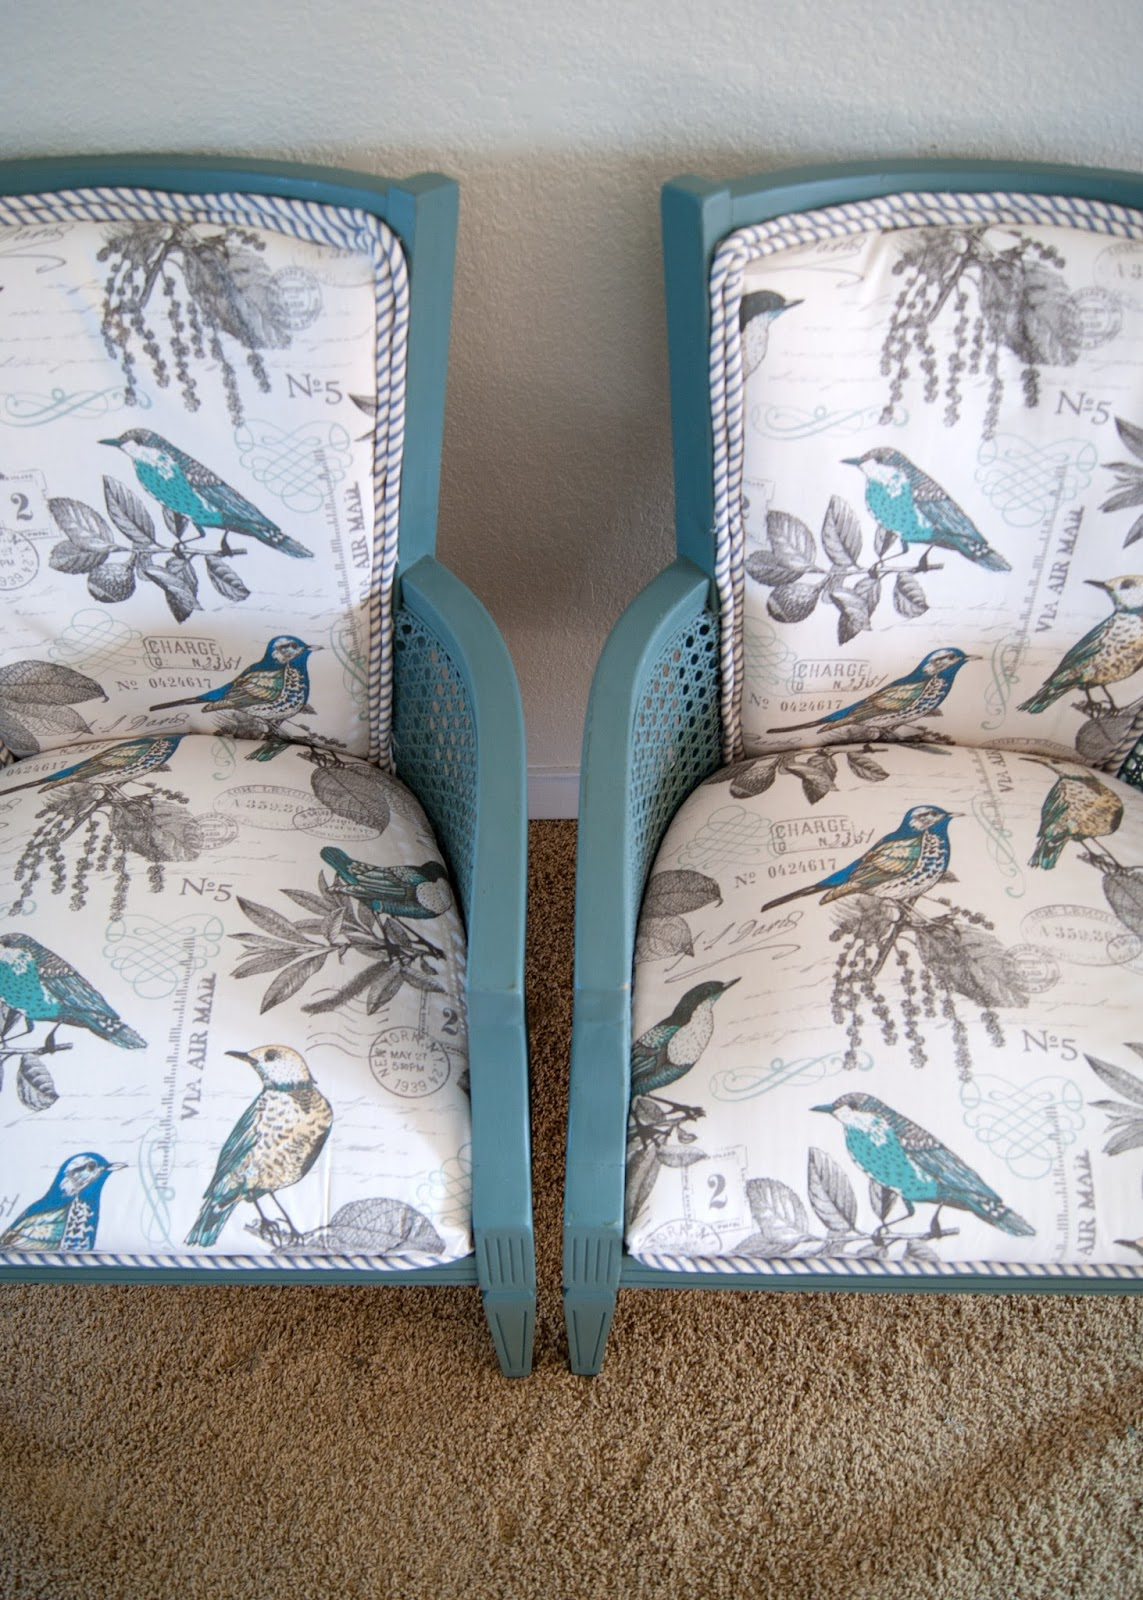 Chair Upholstering 101 - the unprofessional guide to giving a chair a makeover - caned chairs, mattress ticking, bird fabric